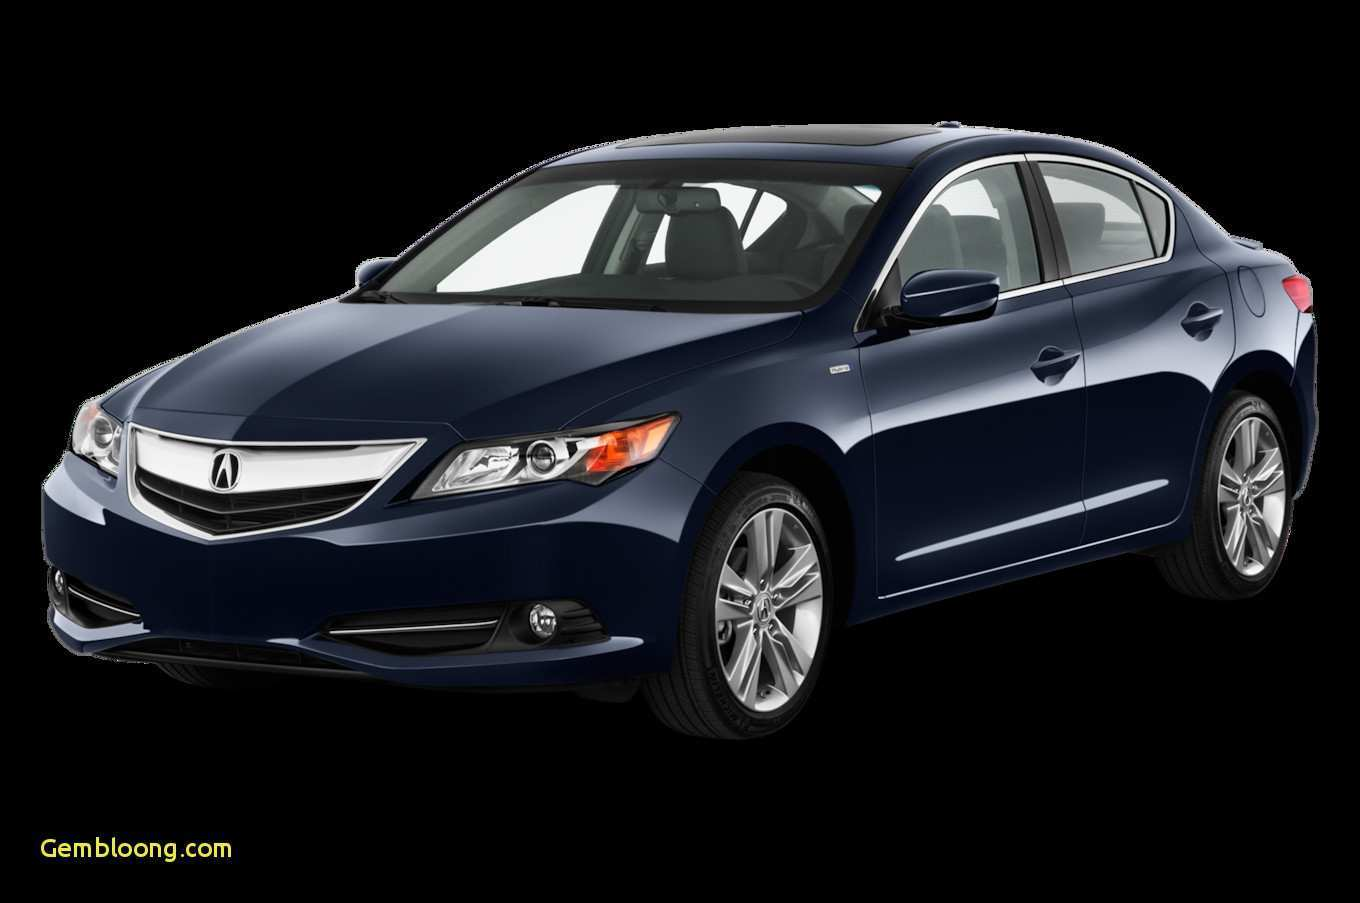 67 New 2019 Acura Tl Type S Price And Review